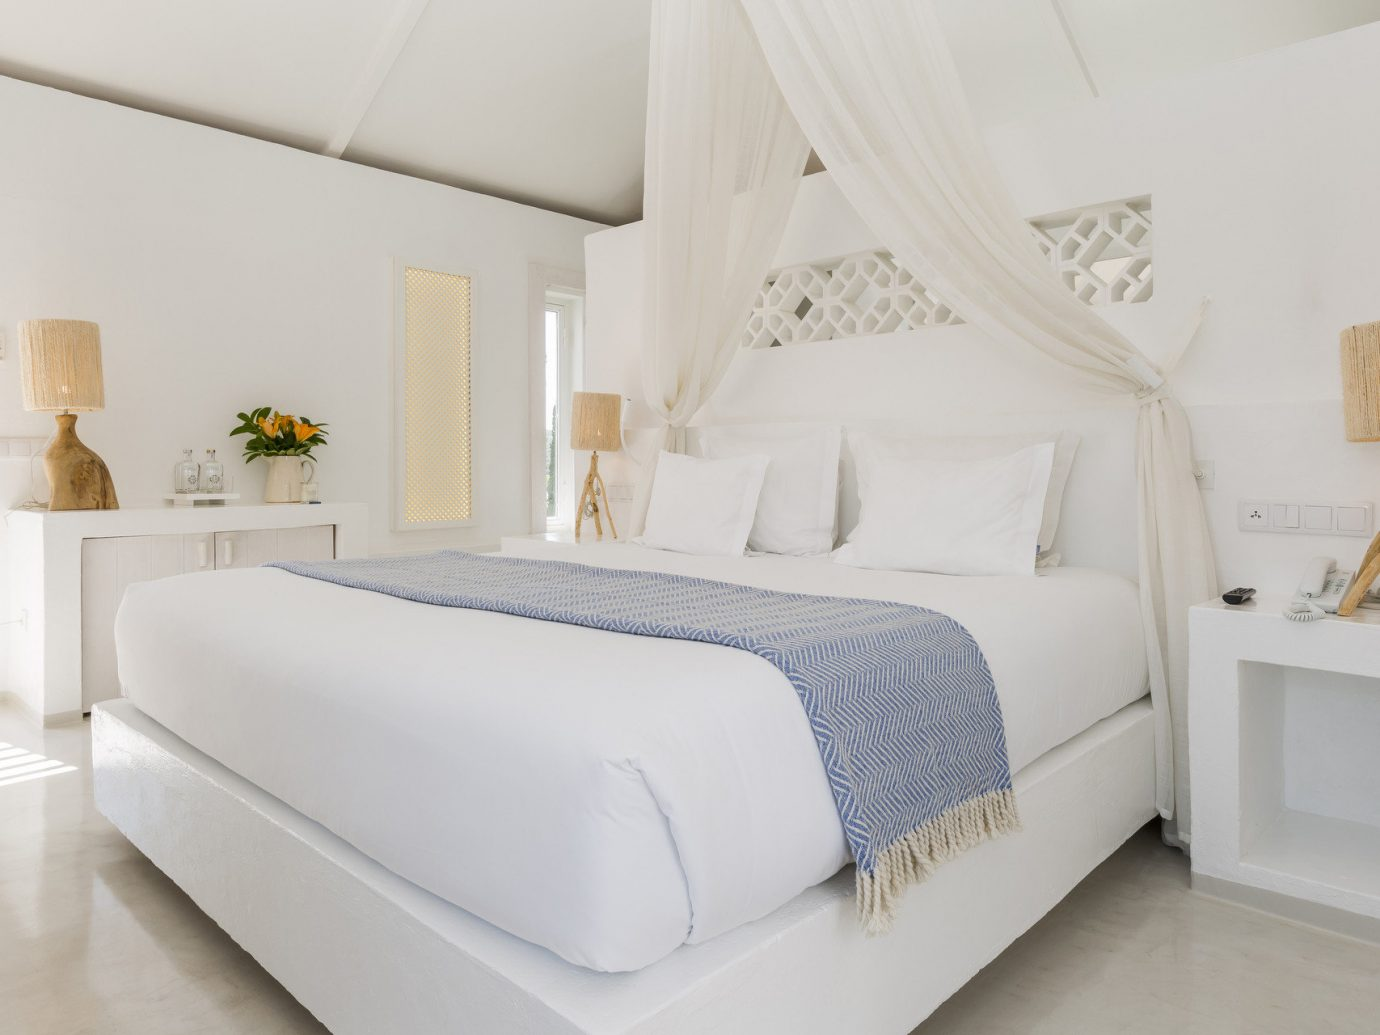 Boutique Hotels Health + Wellness Hotels Luxury Travel Romance Secret Getaways Spa Retreats Trip Ideas indoor wall floor bed frame room property Suite Bedroom interior design mattress bed home furniture real estate bed sheet hotel estate interior designer comfort ceiling product